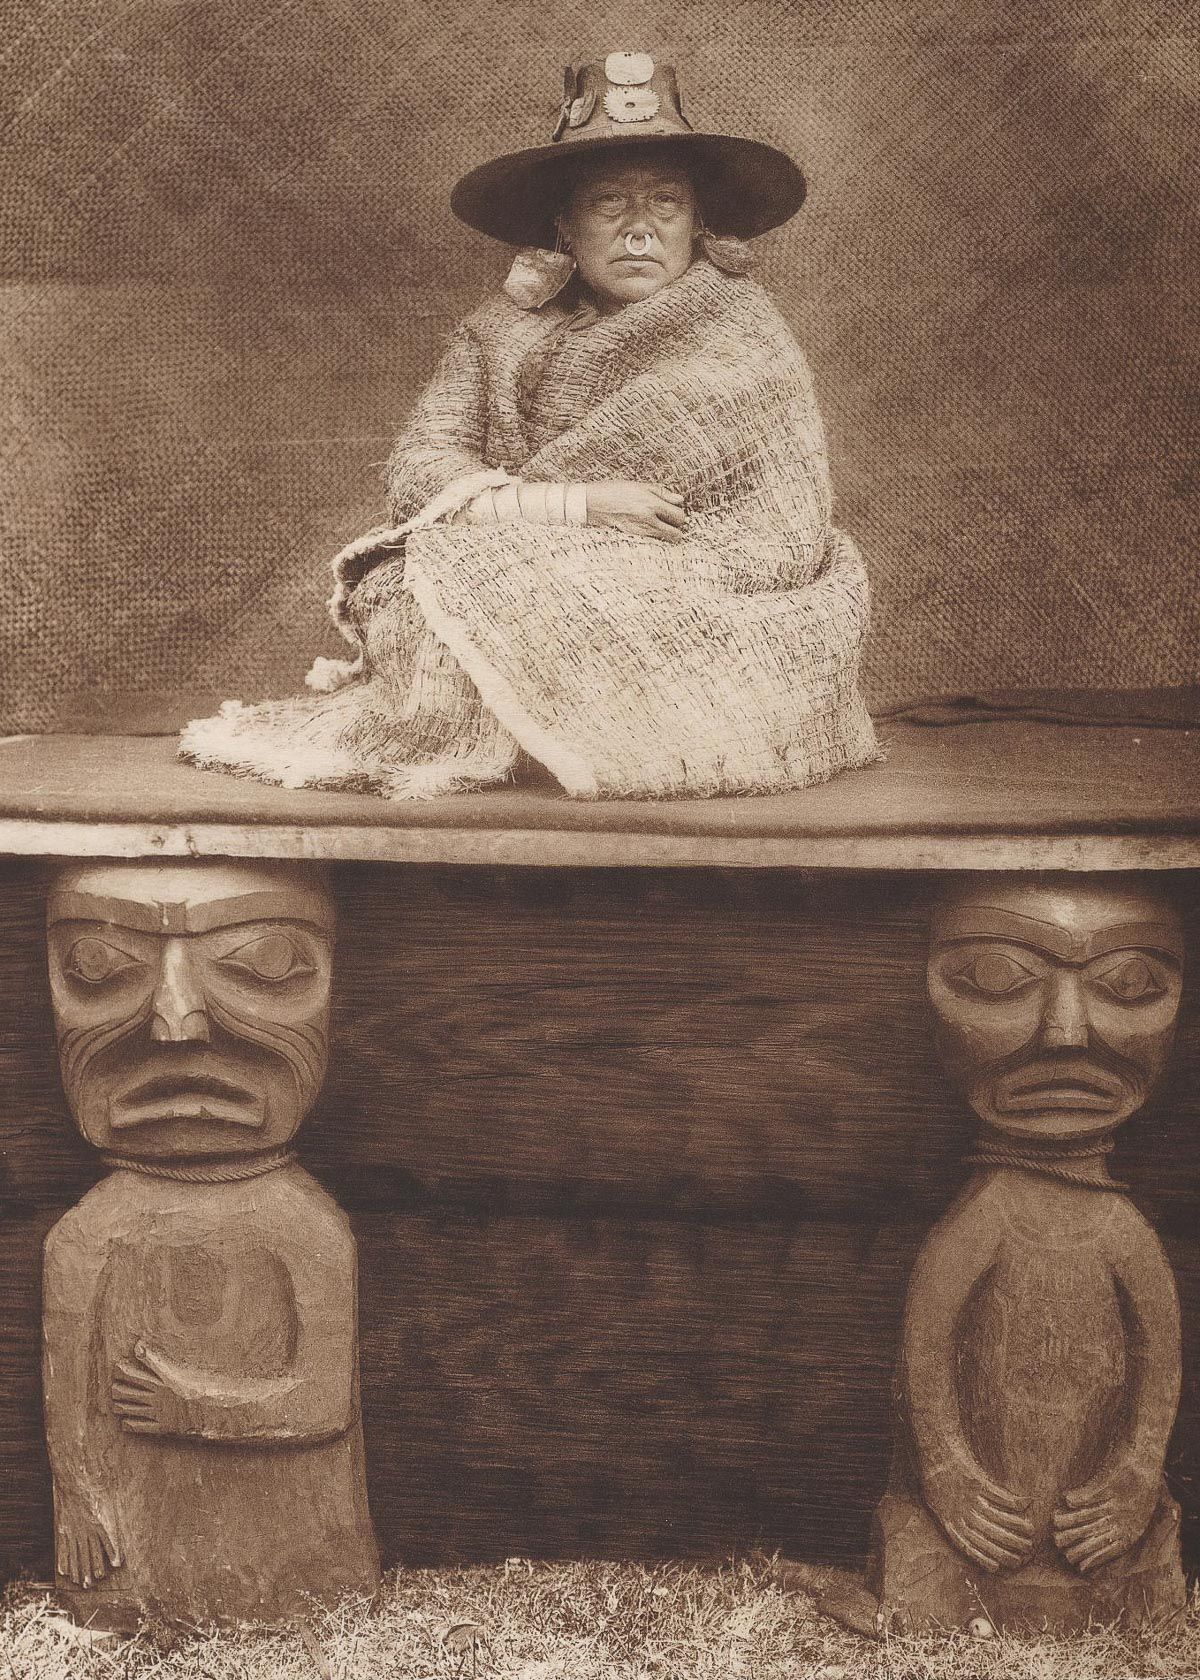 A Kwakiutl chief's daughter,  1910.  ©EDWARD S. CURTIS/LIBRARY OF CONGRESS